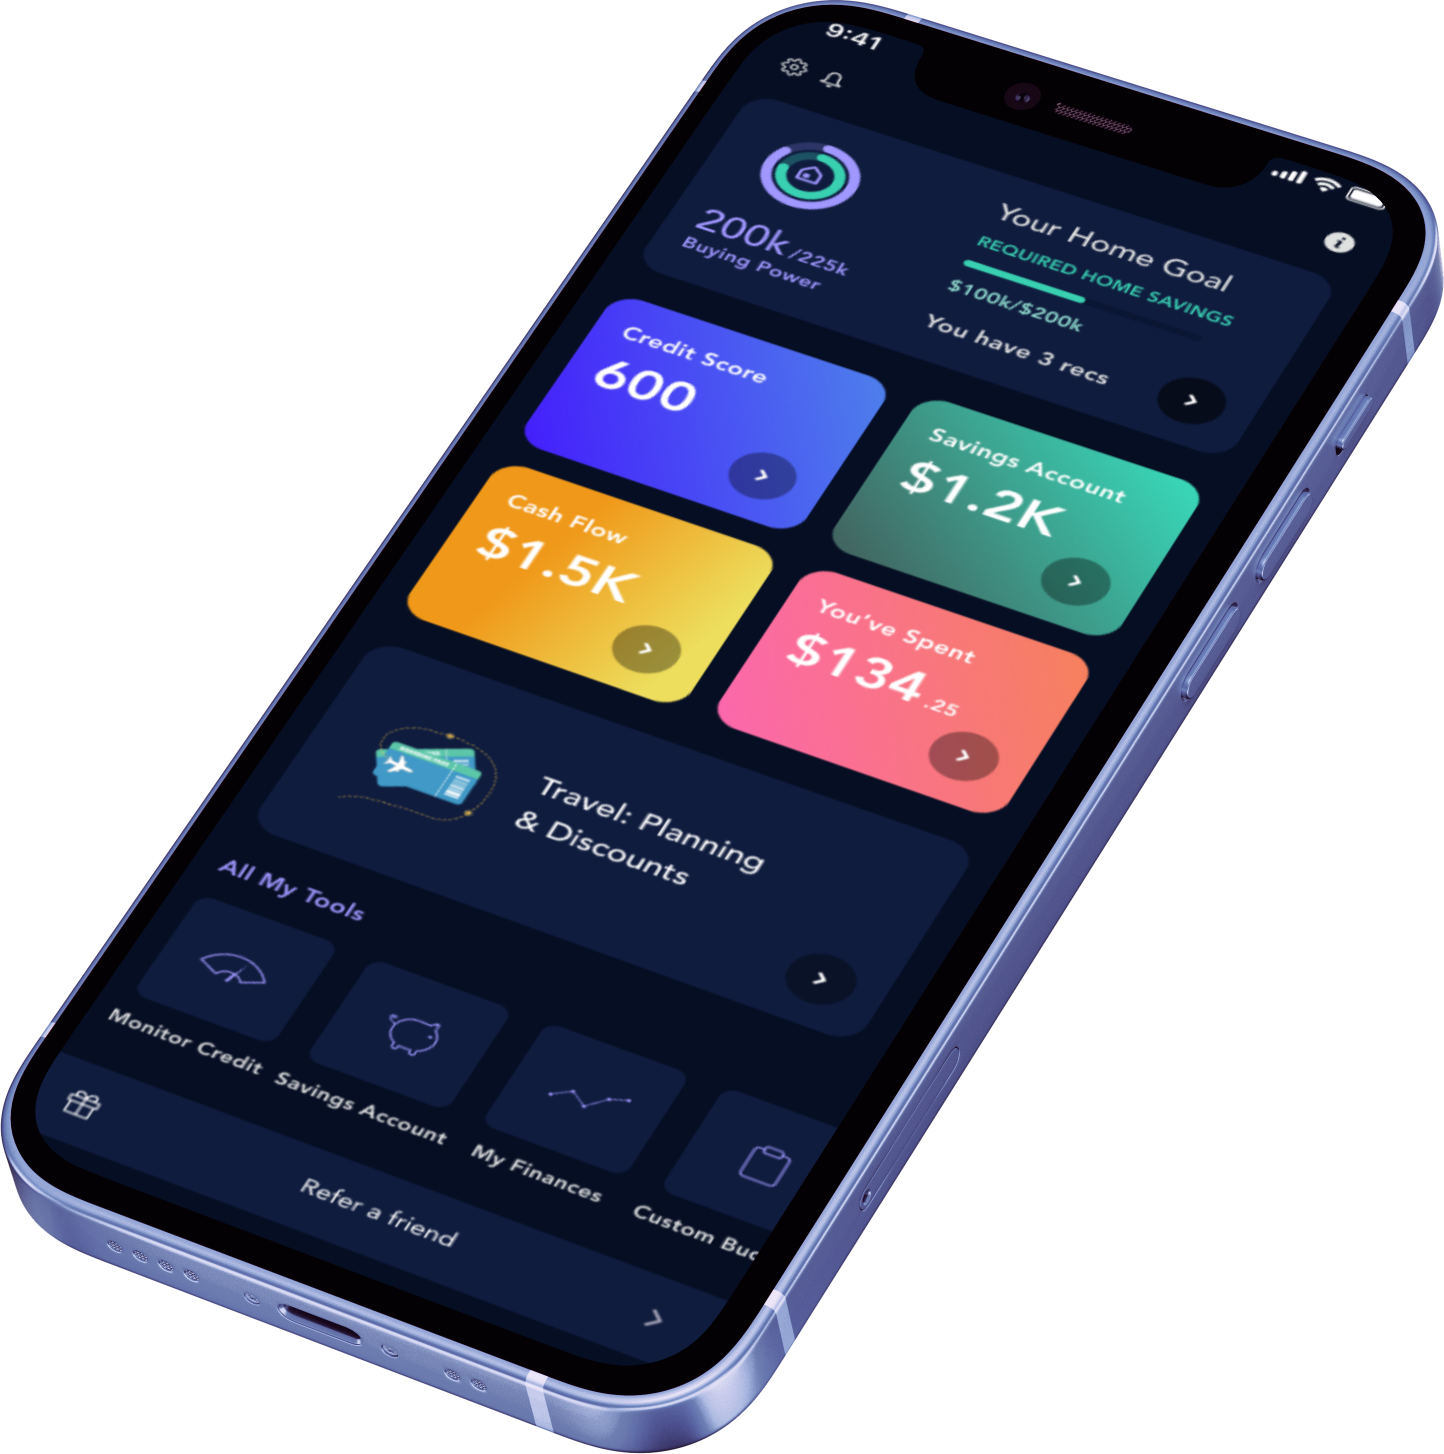 iphone home dashboard of Quo